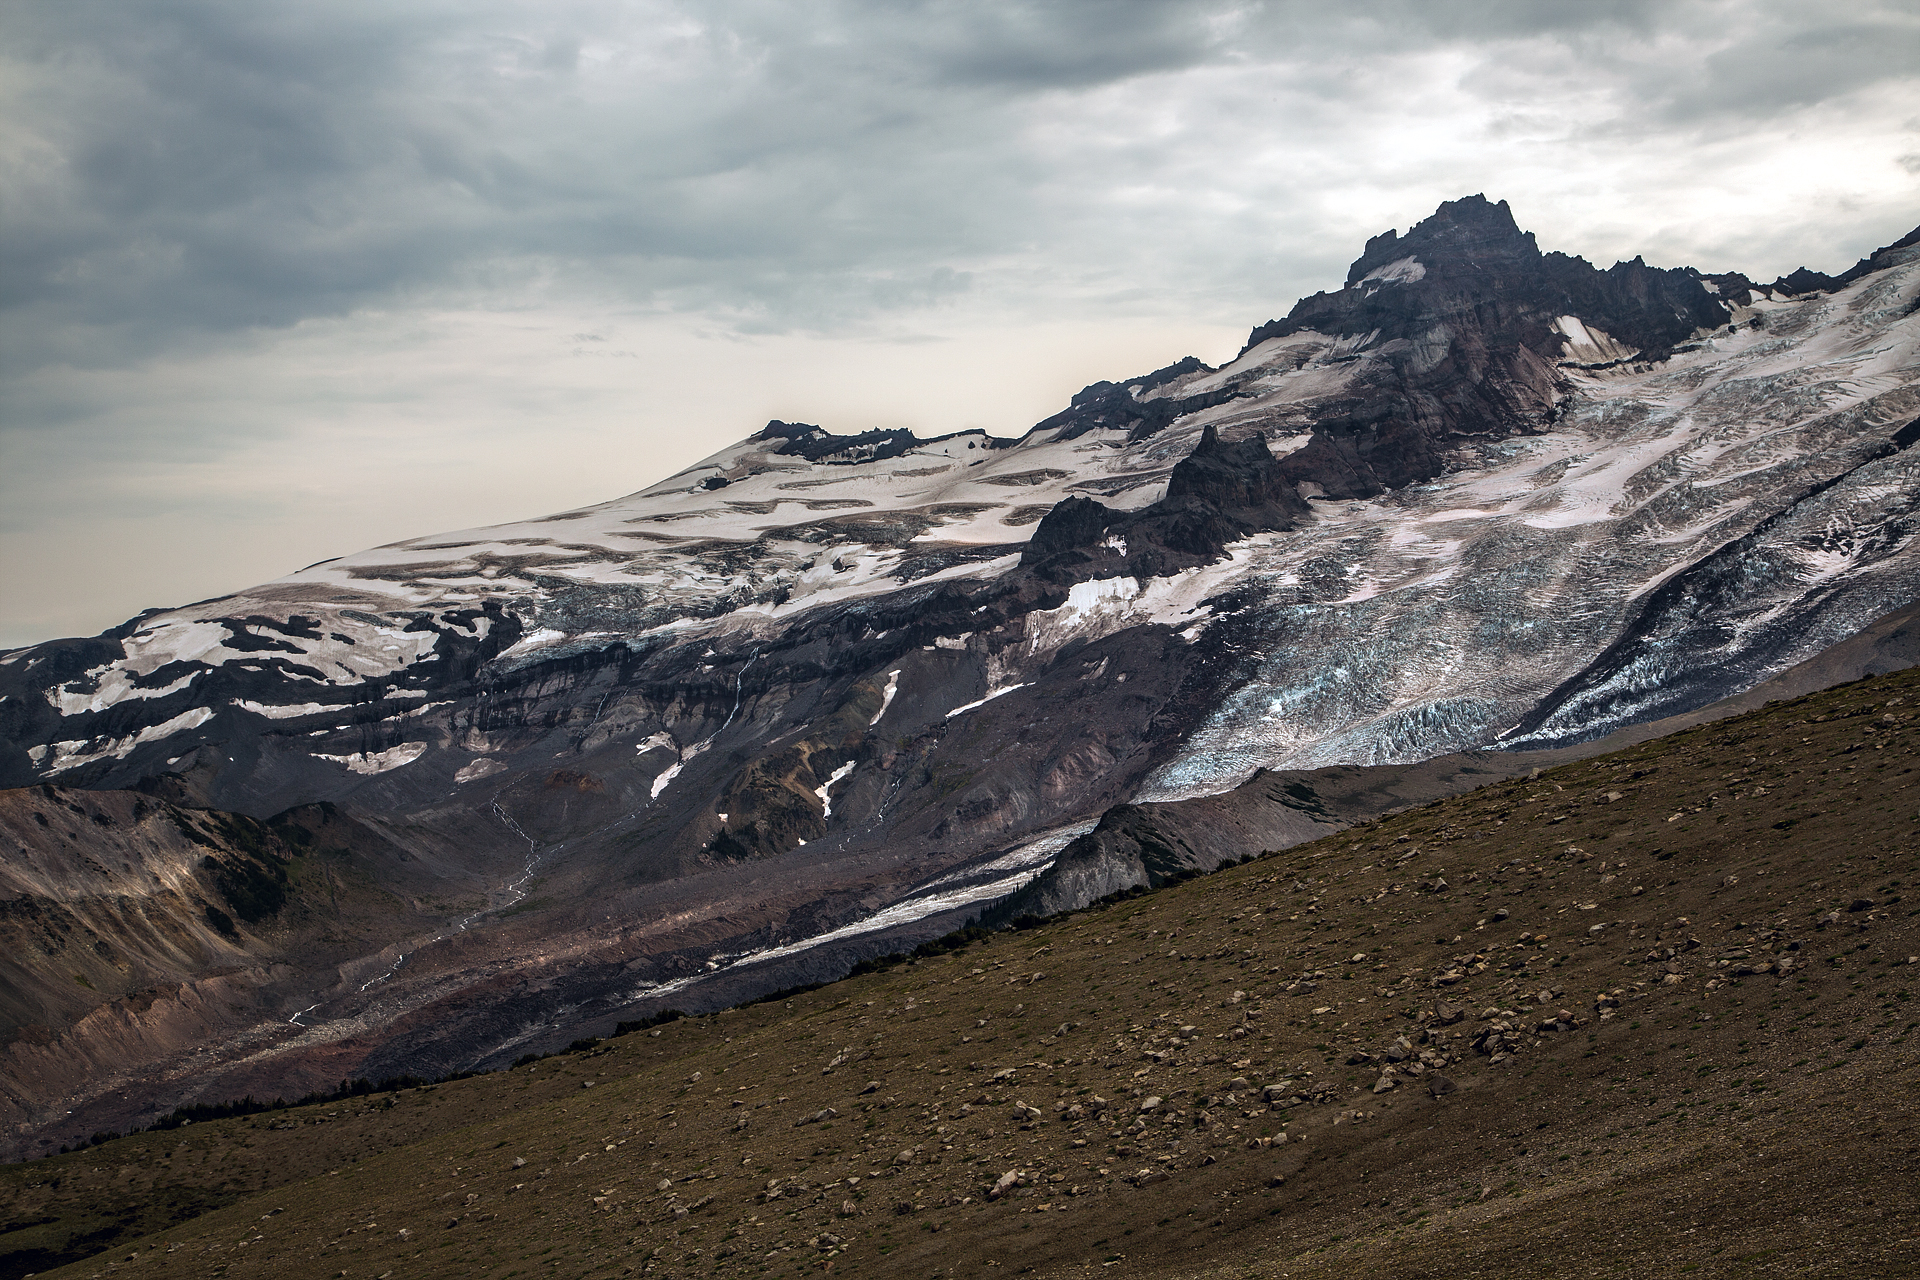 20130822-Rainier-Day-2---Sunrise-626.jpg